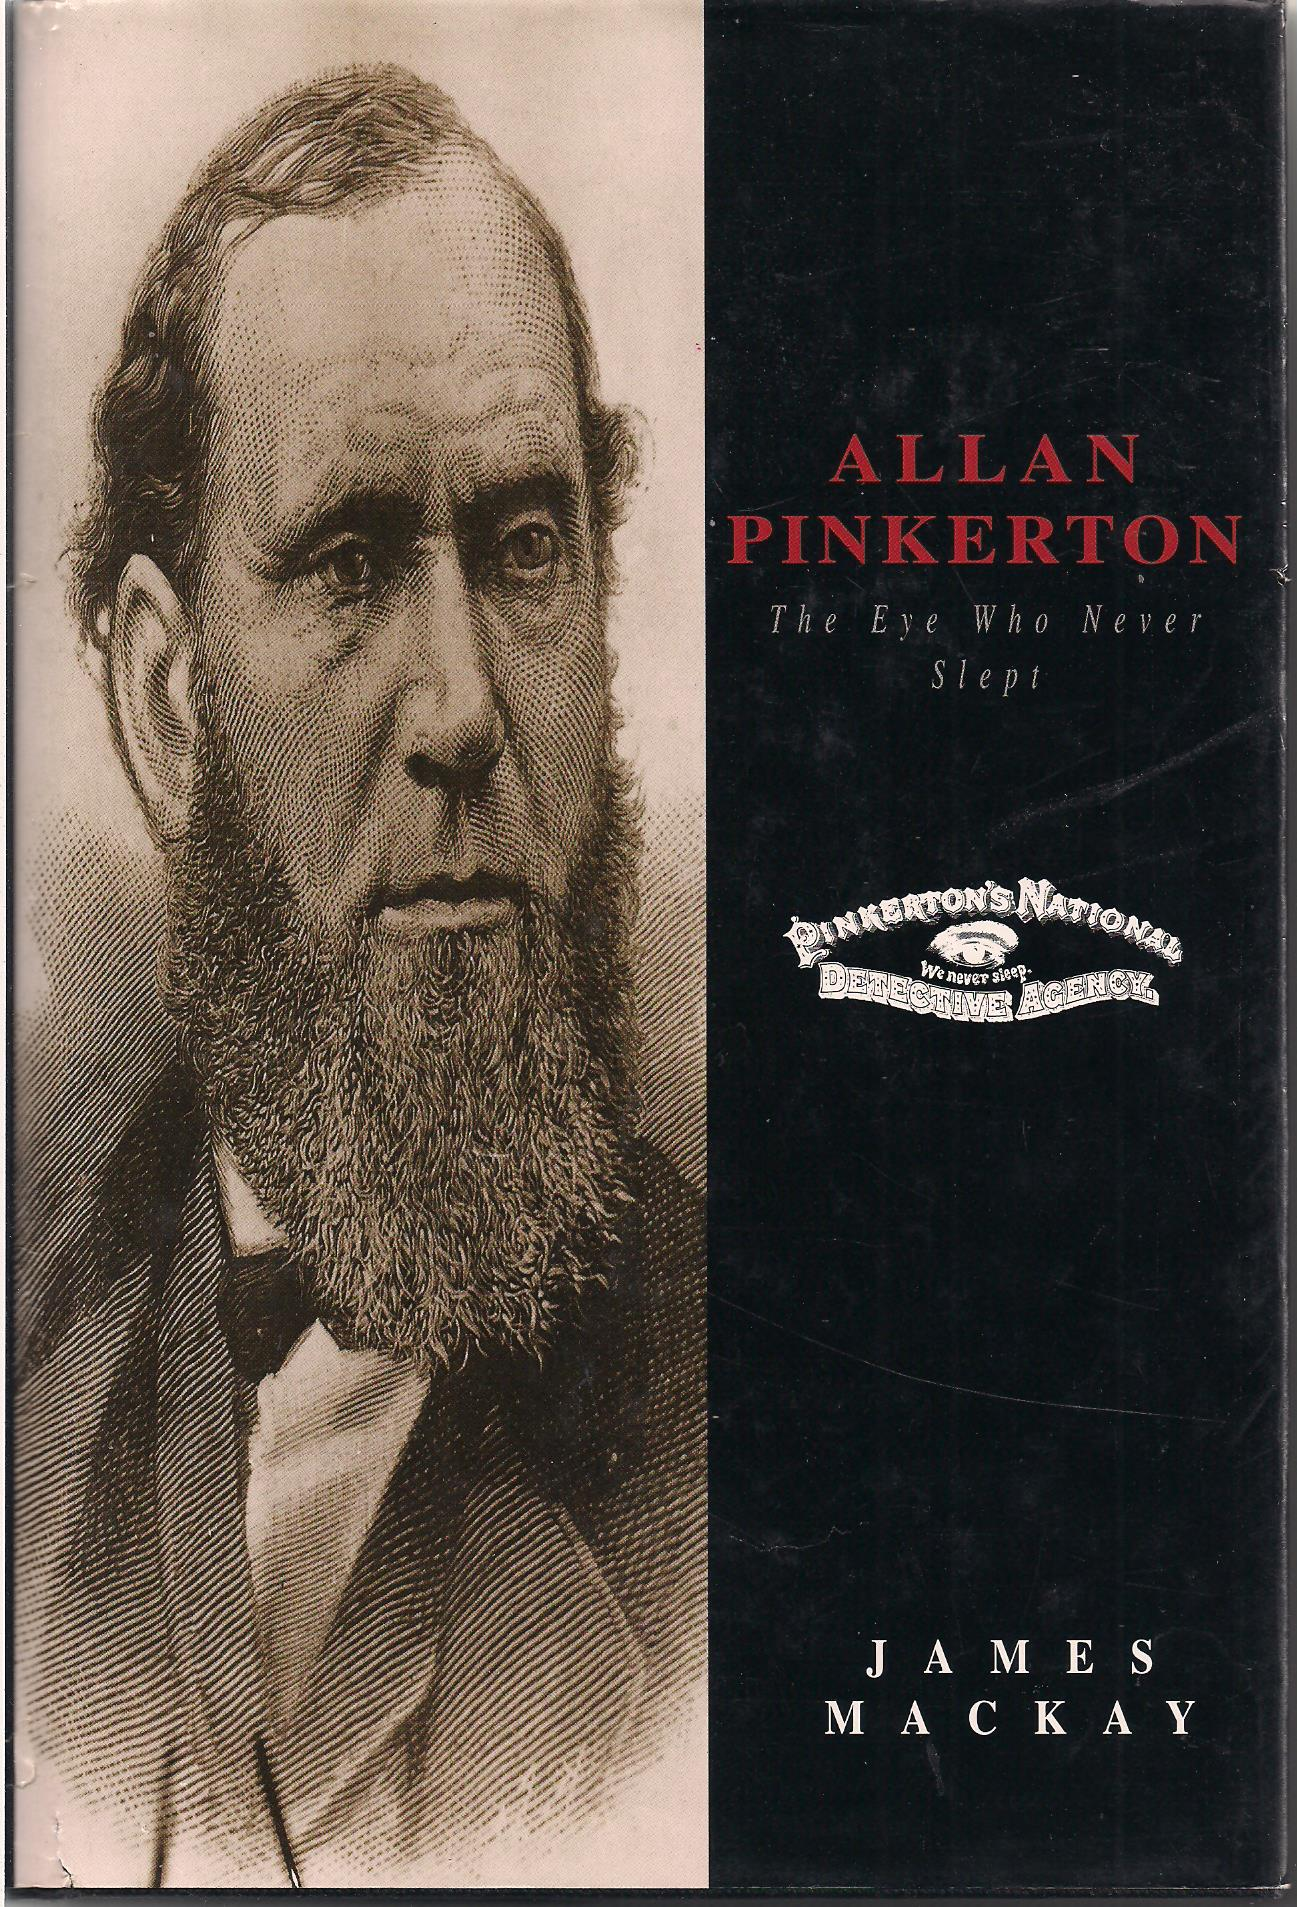 alan pinkerton biography Allan pinkerton was a grizzled, tough-as-haggis, face-punching old scotsman who came to the united states to pursue his undying lifelong dream of building barrels with his hands and selling them for cash.